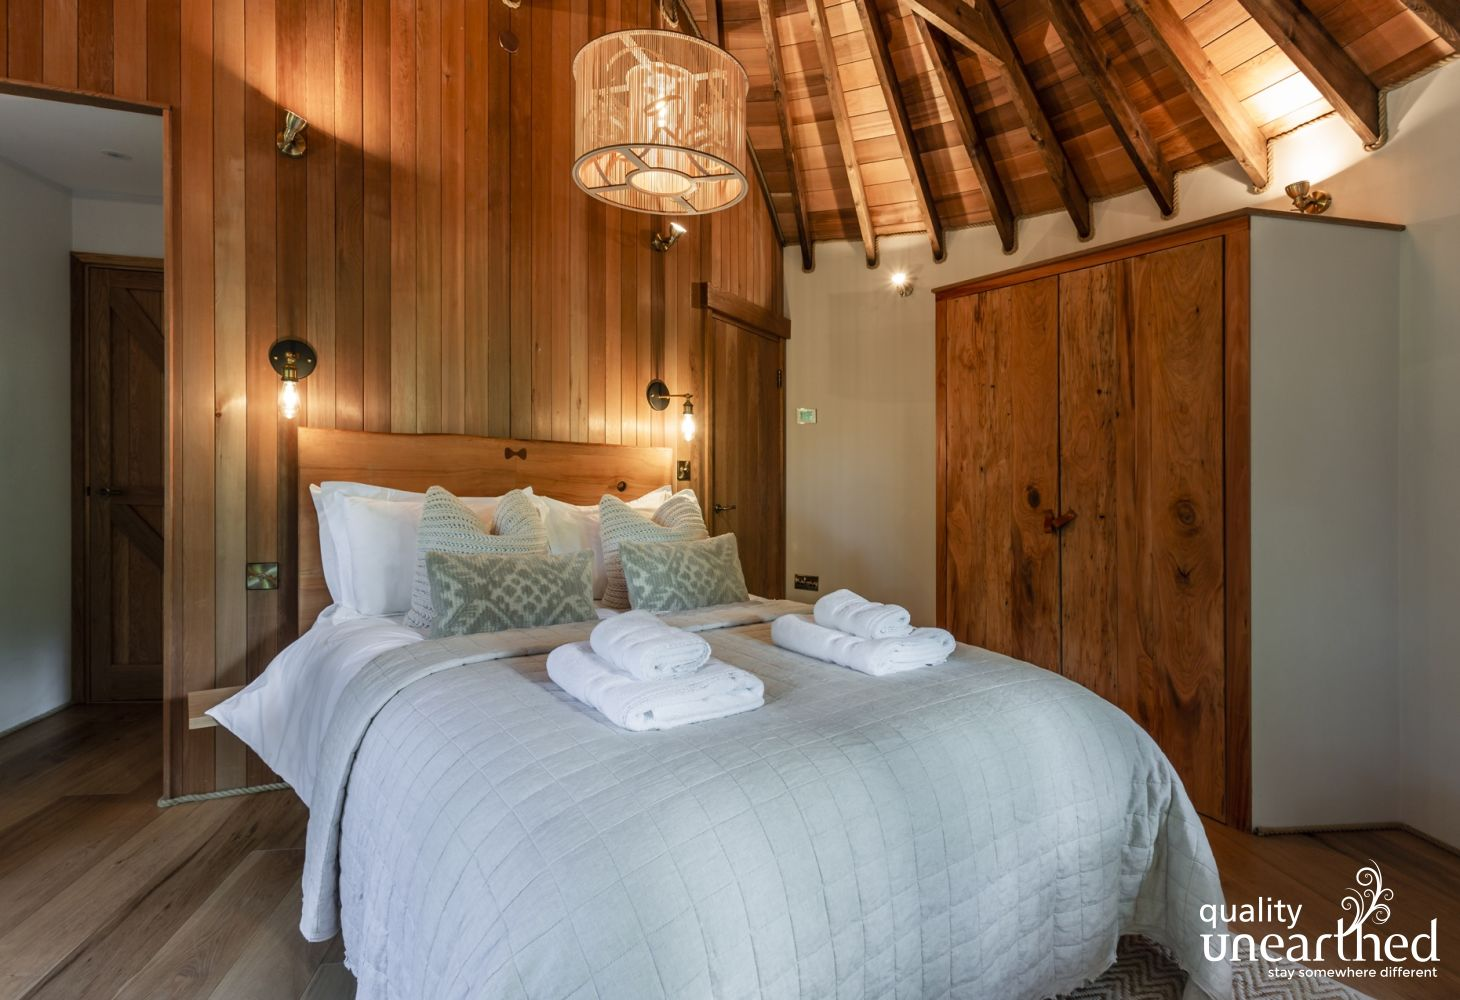 A king size 5 star luxury bed with plush linens, under exposed eves with windows to the Sussex woodland